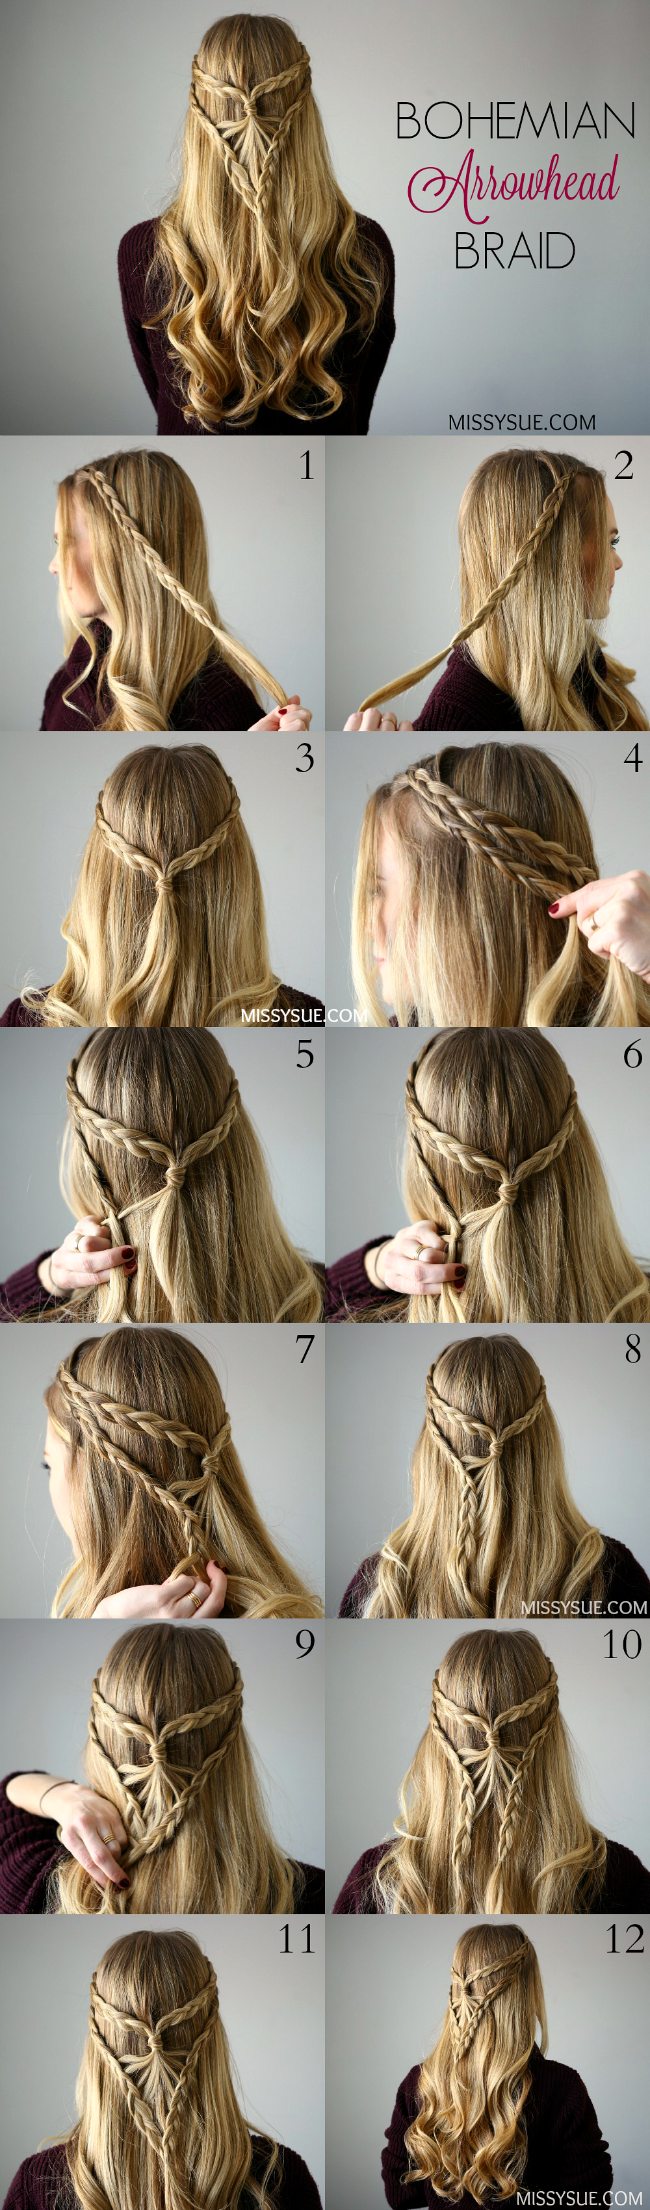 Bohemian Arrowhead Braid Tutorial Braided Hairstyles Tutorials Braided Hairstyles Easy Hair Styles